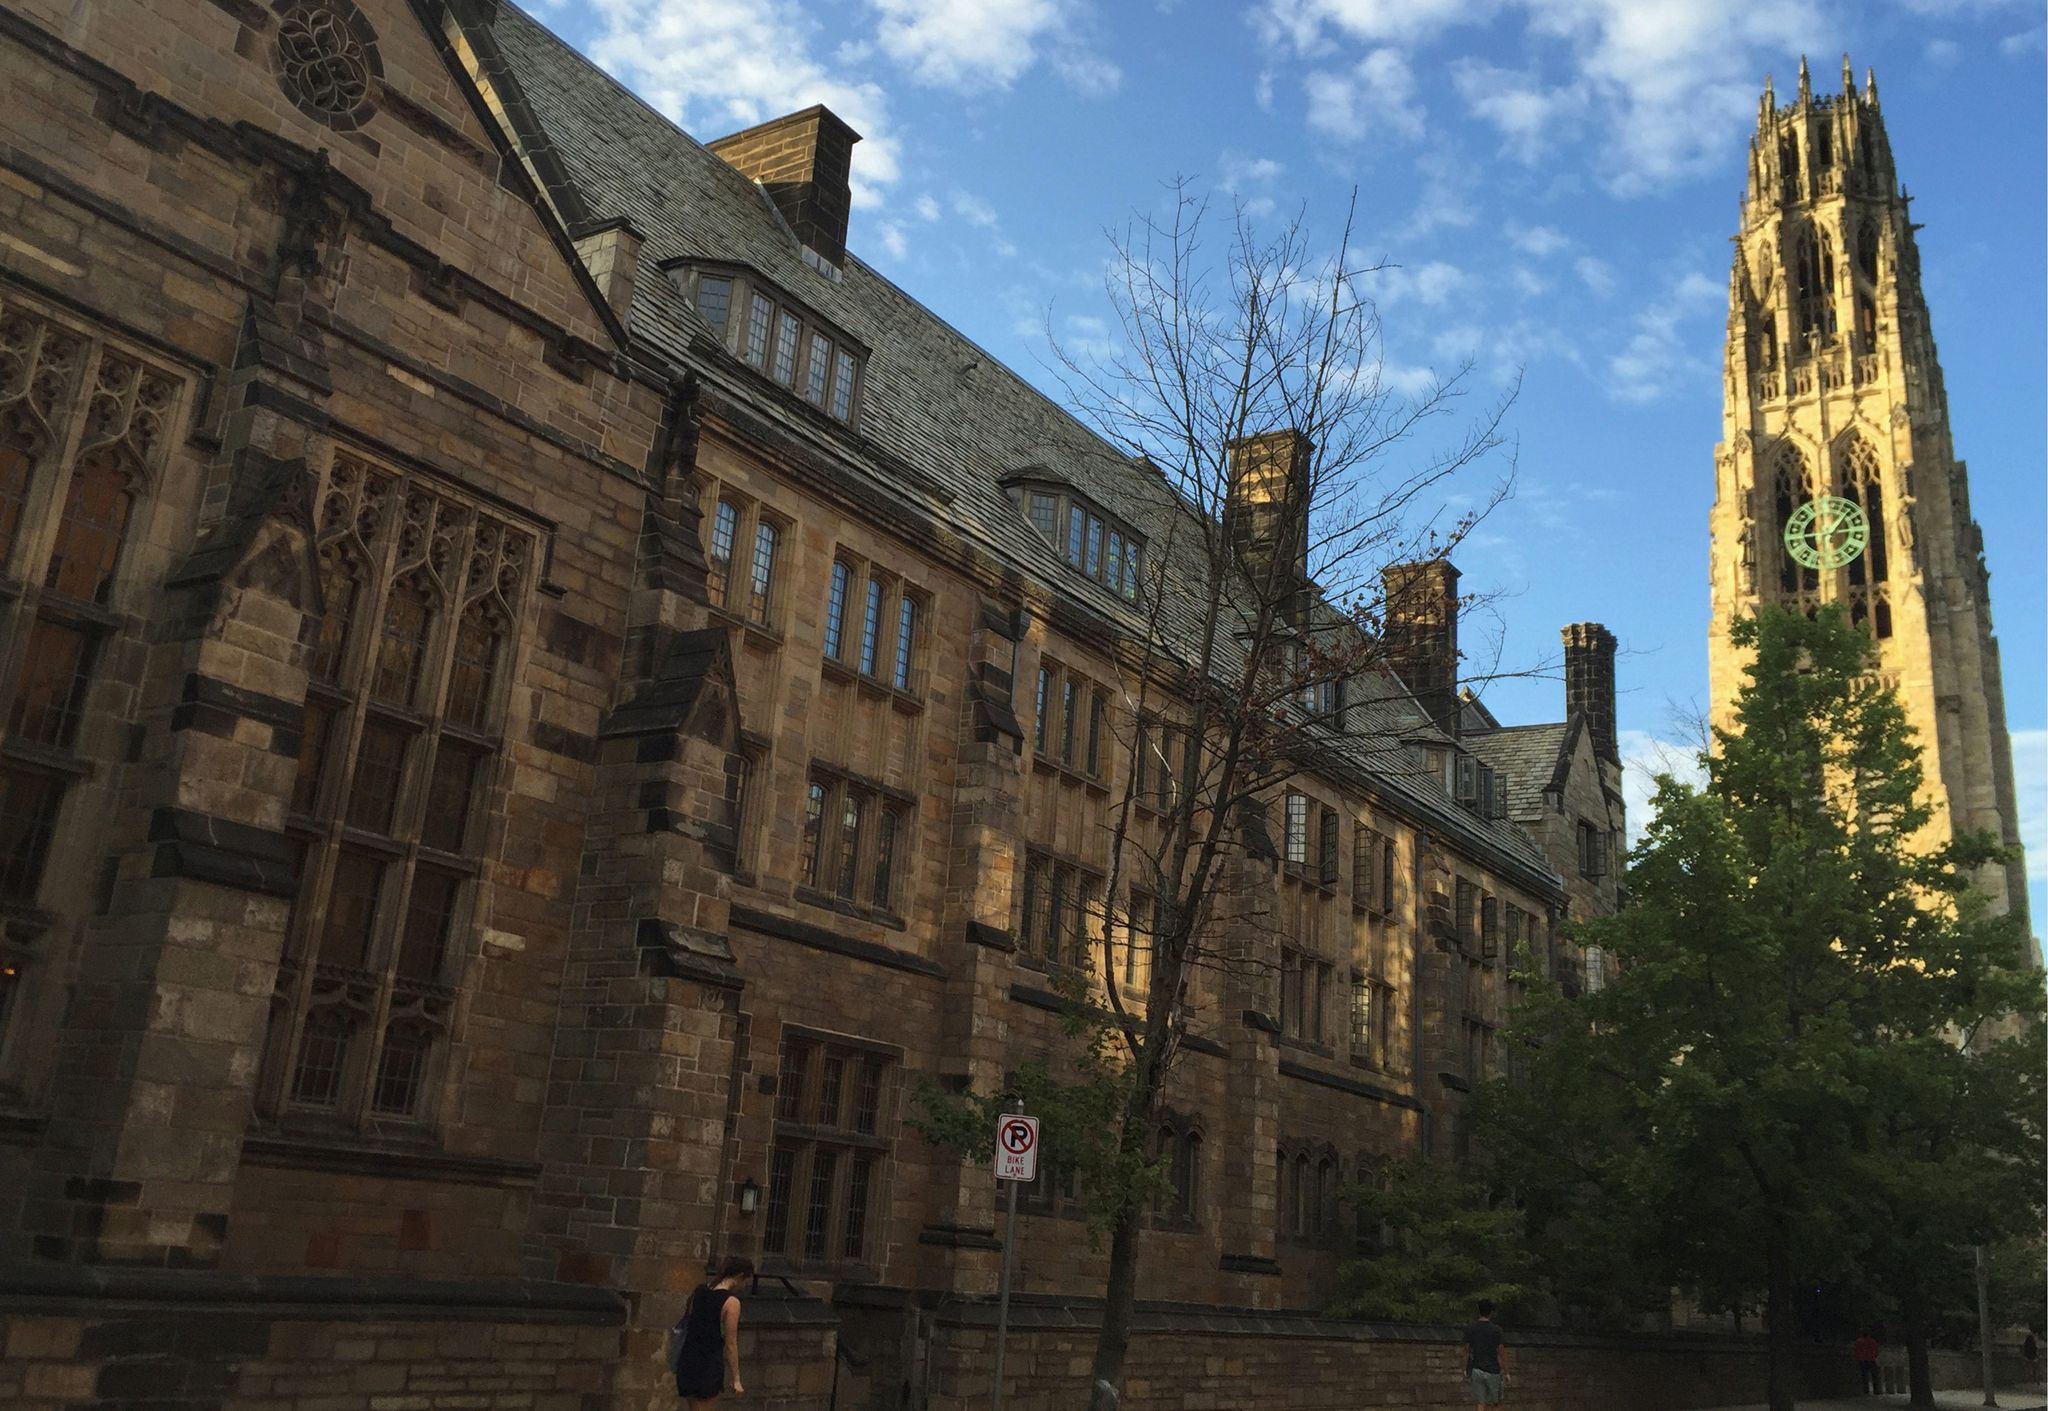 Ted Cruz beefs up probe into Yale Law School, citing religious liberty concerns